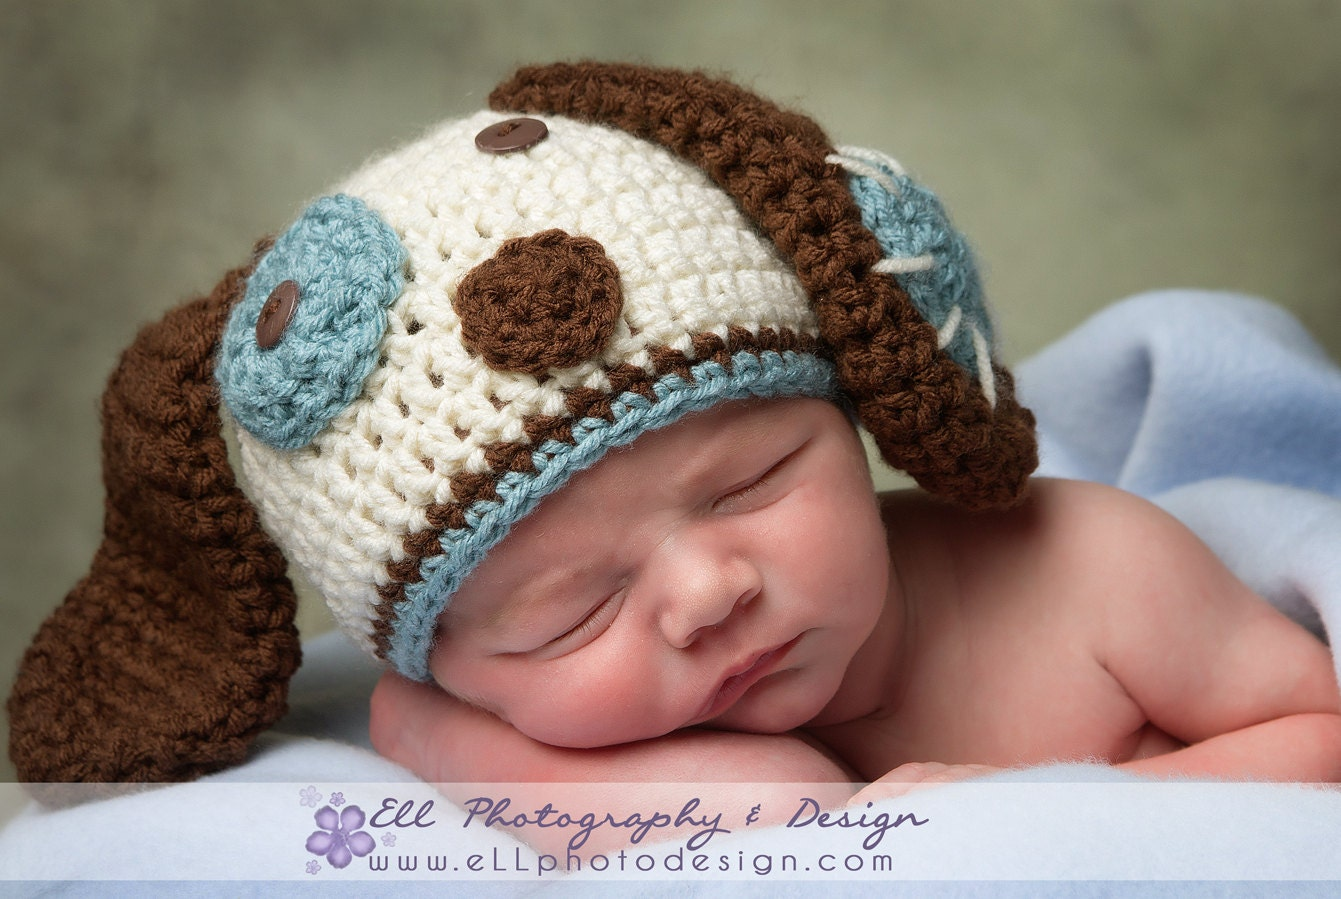 Crochet Pattern Baby Dog Hat : Crochet Puppy Dog Hat Photography Prop by cherlynnephotography